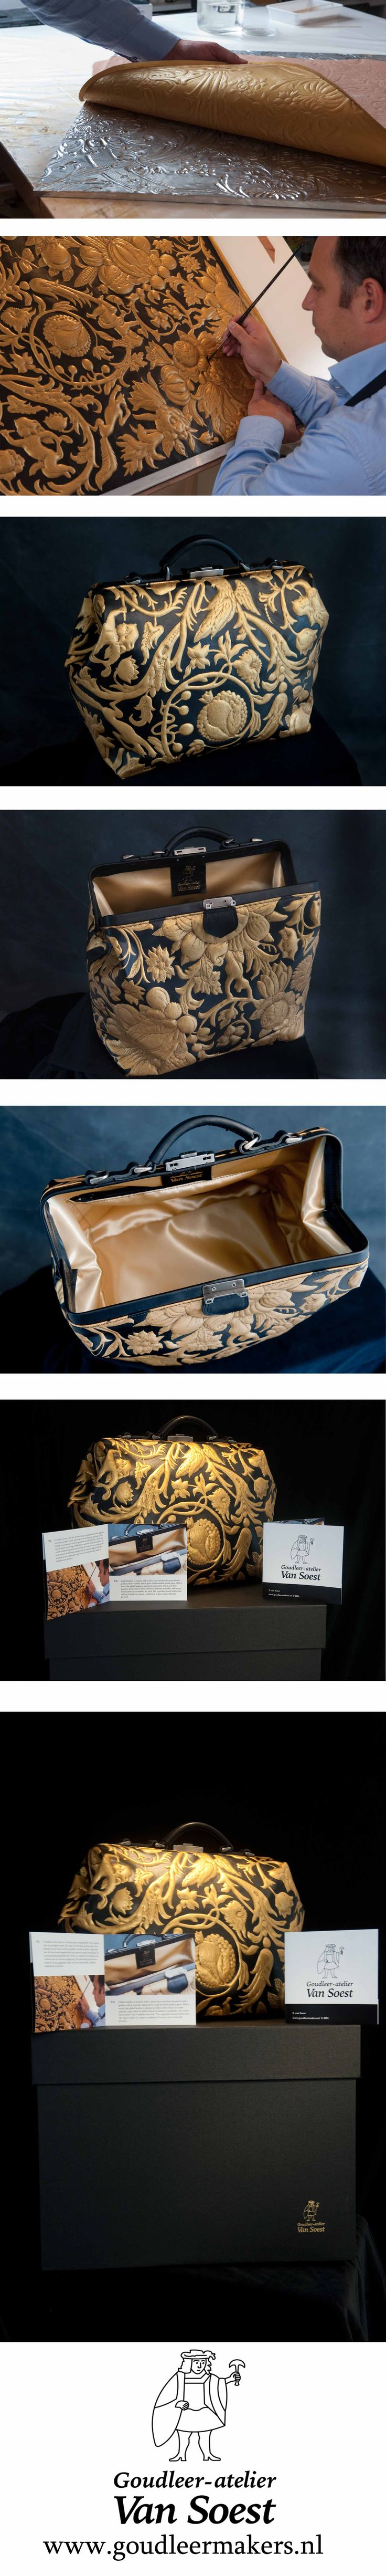 This handbag was designed in cooperation between Goudleeratelier Van Soest and Mutsaers Leatherware, and will be distributed in two editions only. Goudleeratelier Van Soest is the Netherlands' only gilded leatherworker. The second-generation owner of the atelier continues to keep the aging craft of gilded leather alive today.   www.goudleermakers.nl